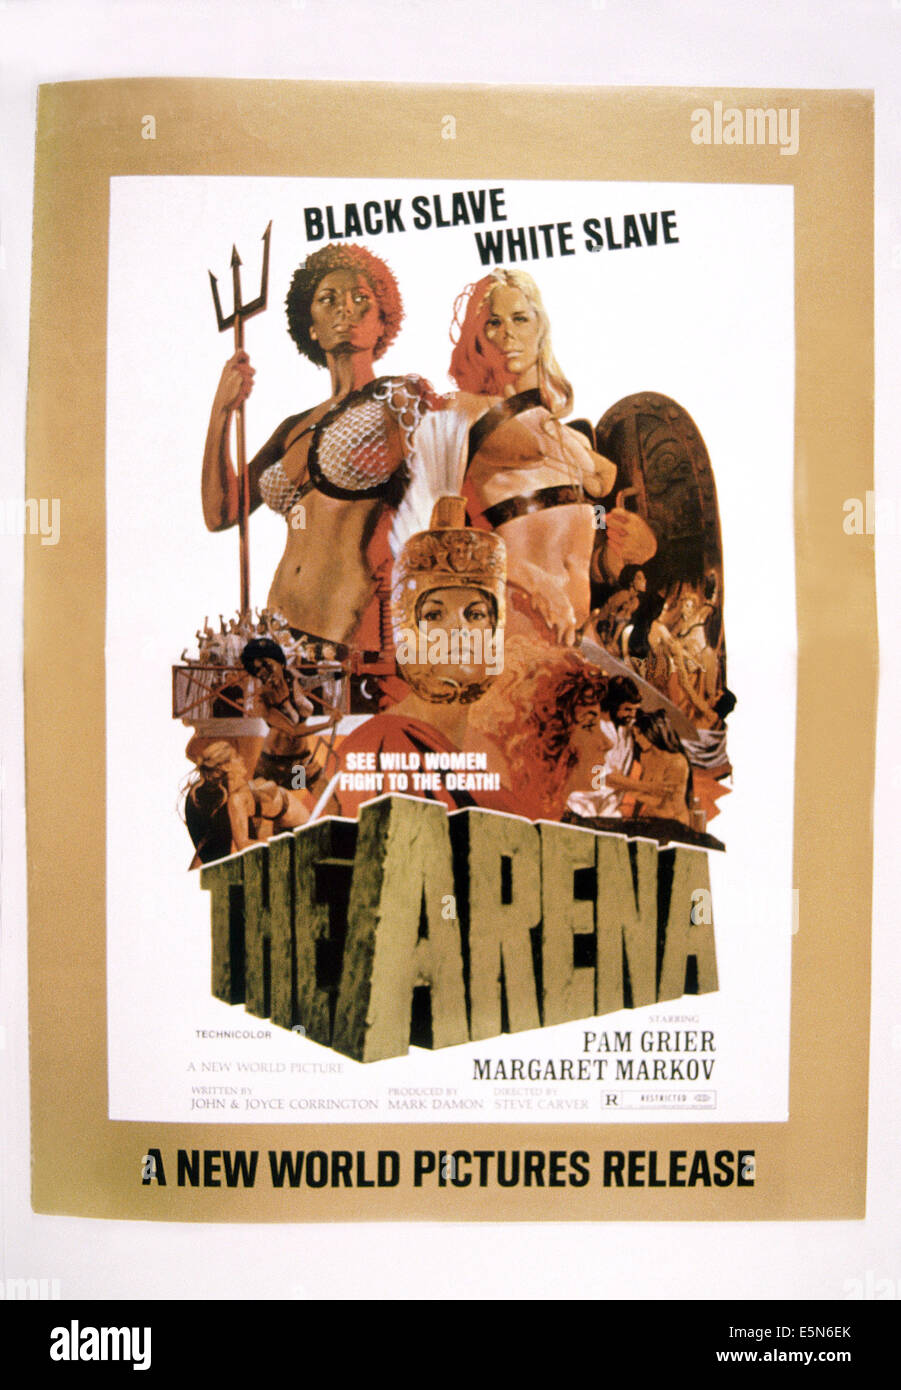 THE ARENA, rear from left: Pam Grier, Margaret Markov, 1974 - Stock Image